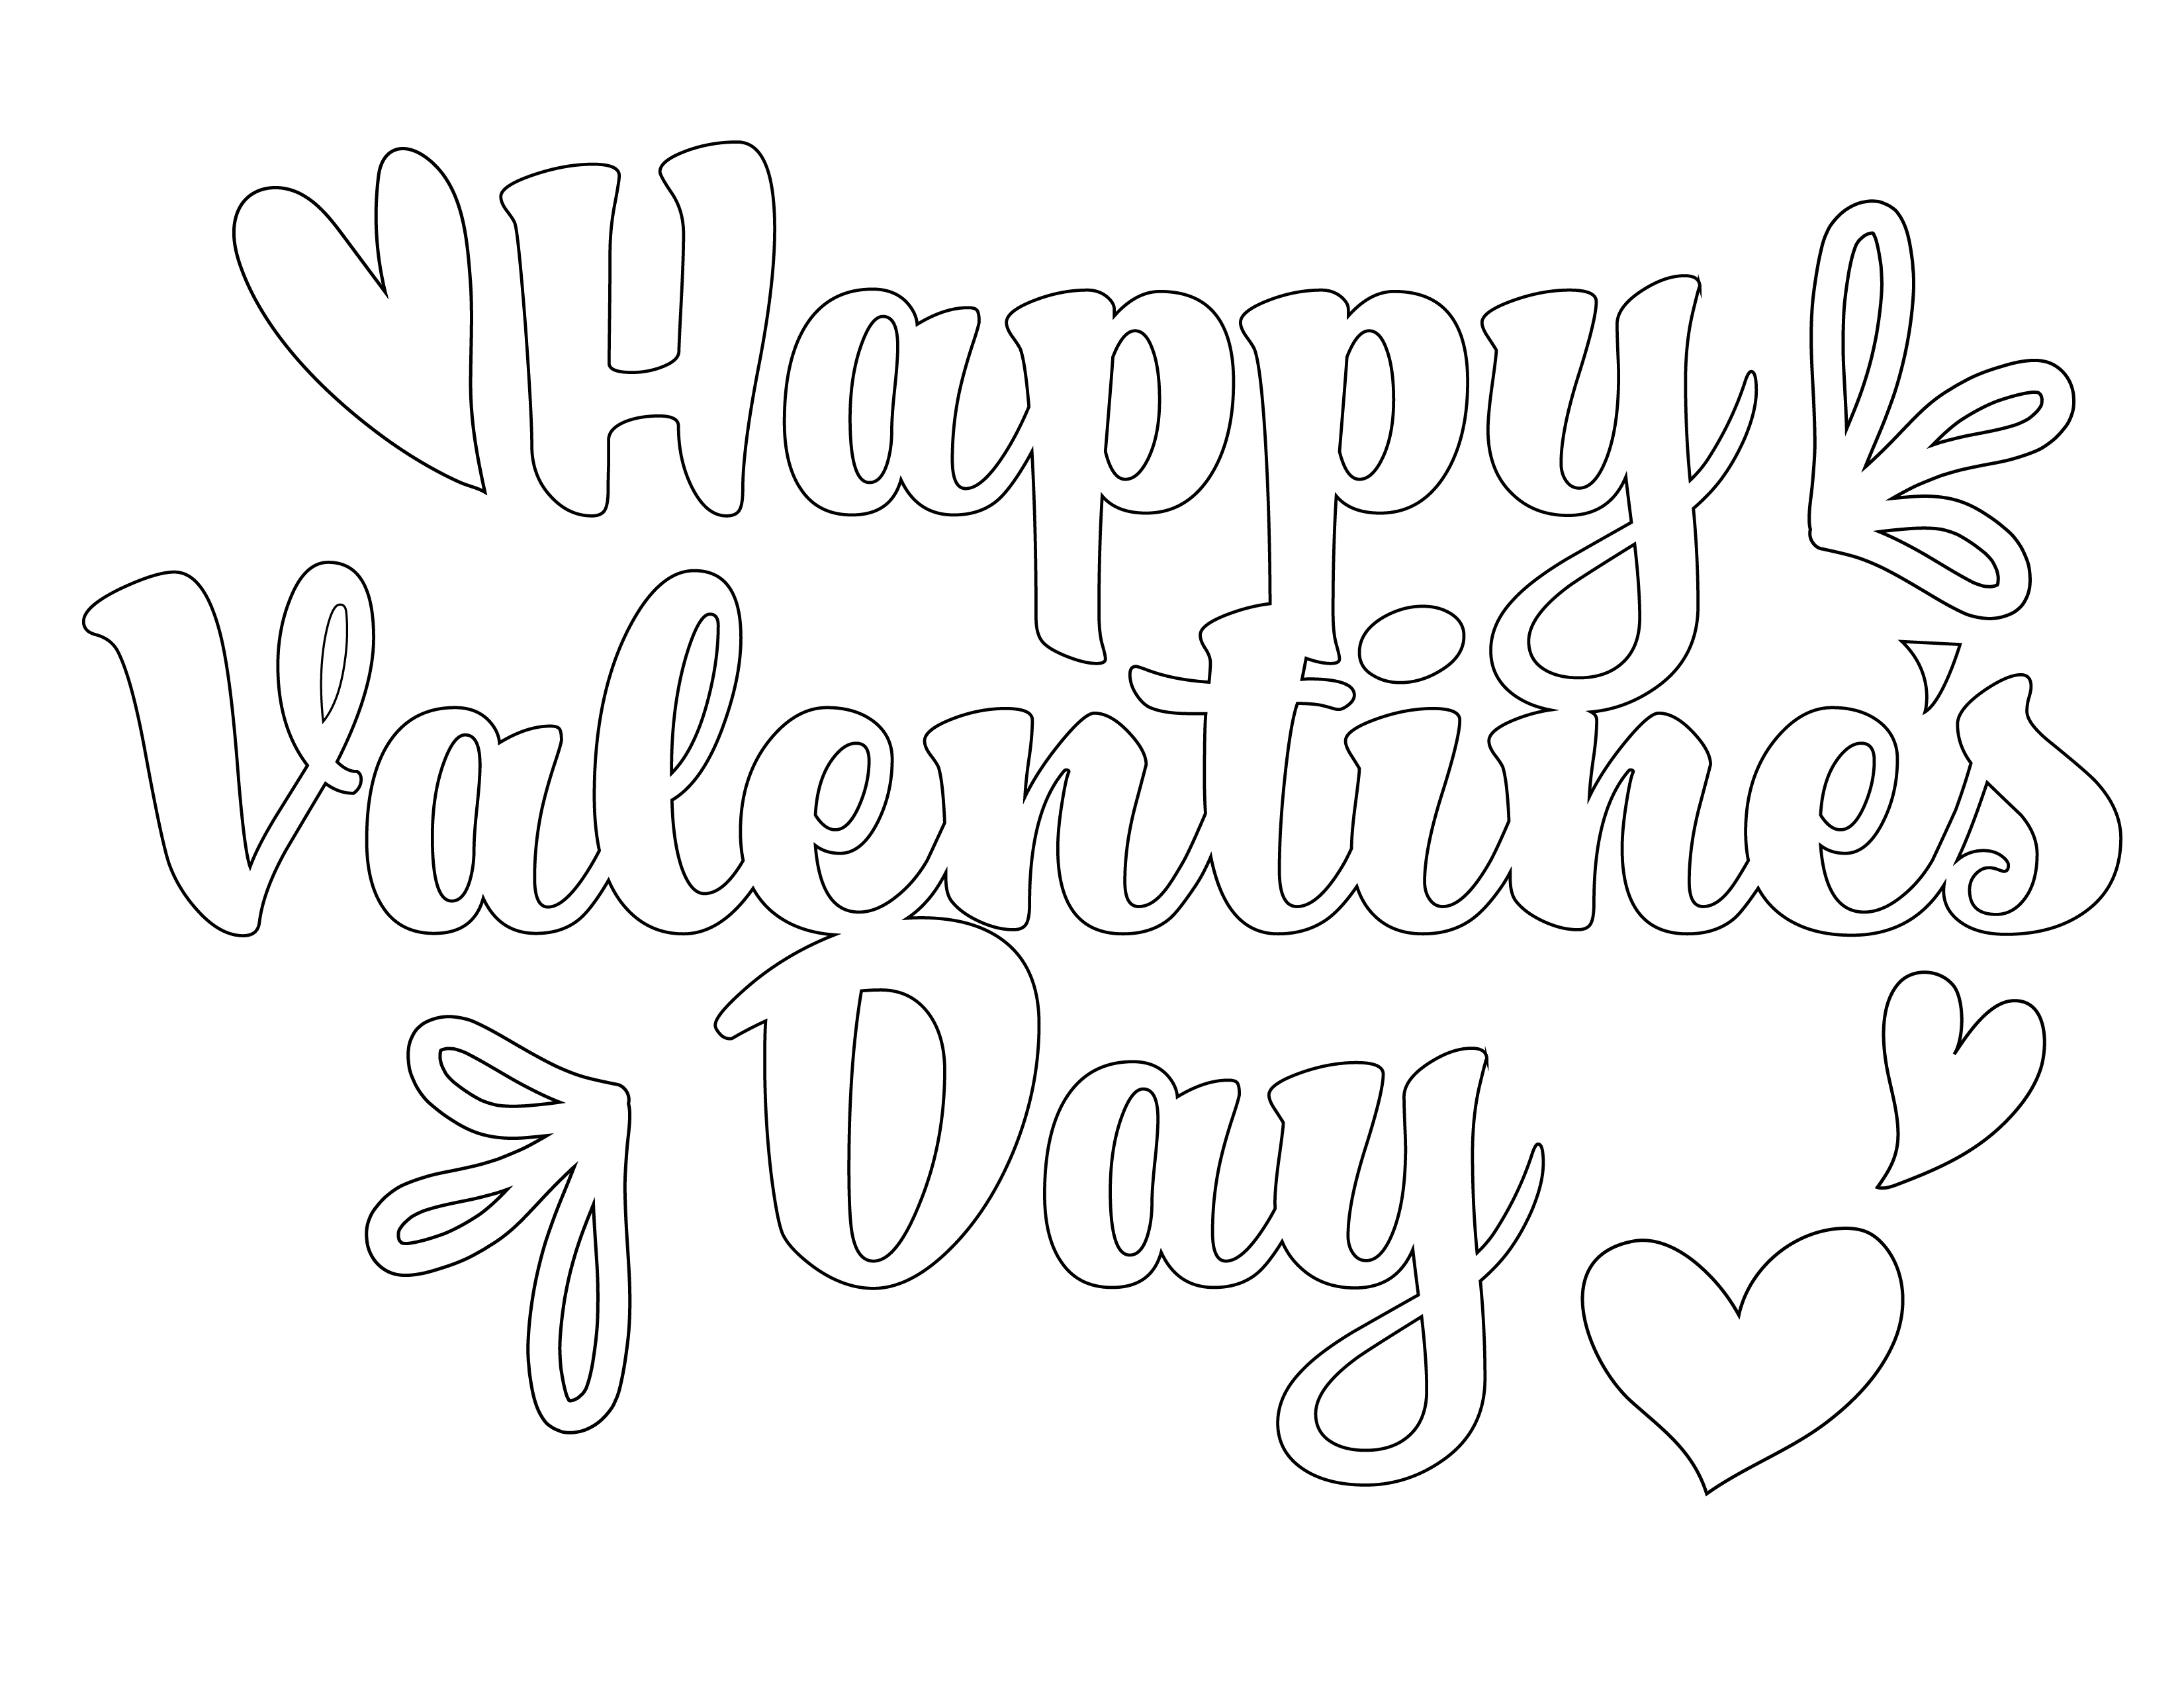 This free printable with Happy Valentine's Day in bubble letters is a sweet addition to any Valentine's gift!